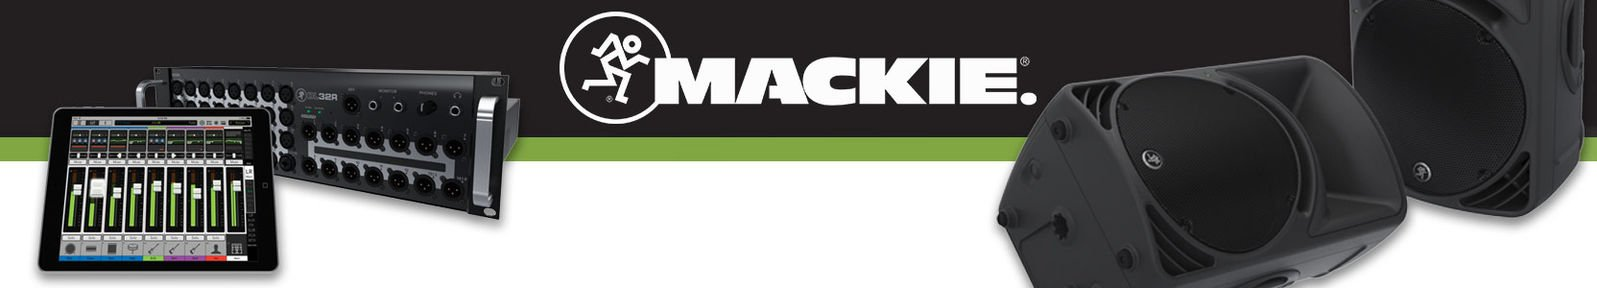 Mackie - DK Mixers, Speakers and Audio Equipment